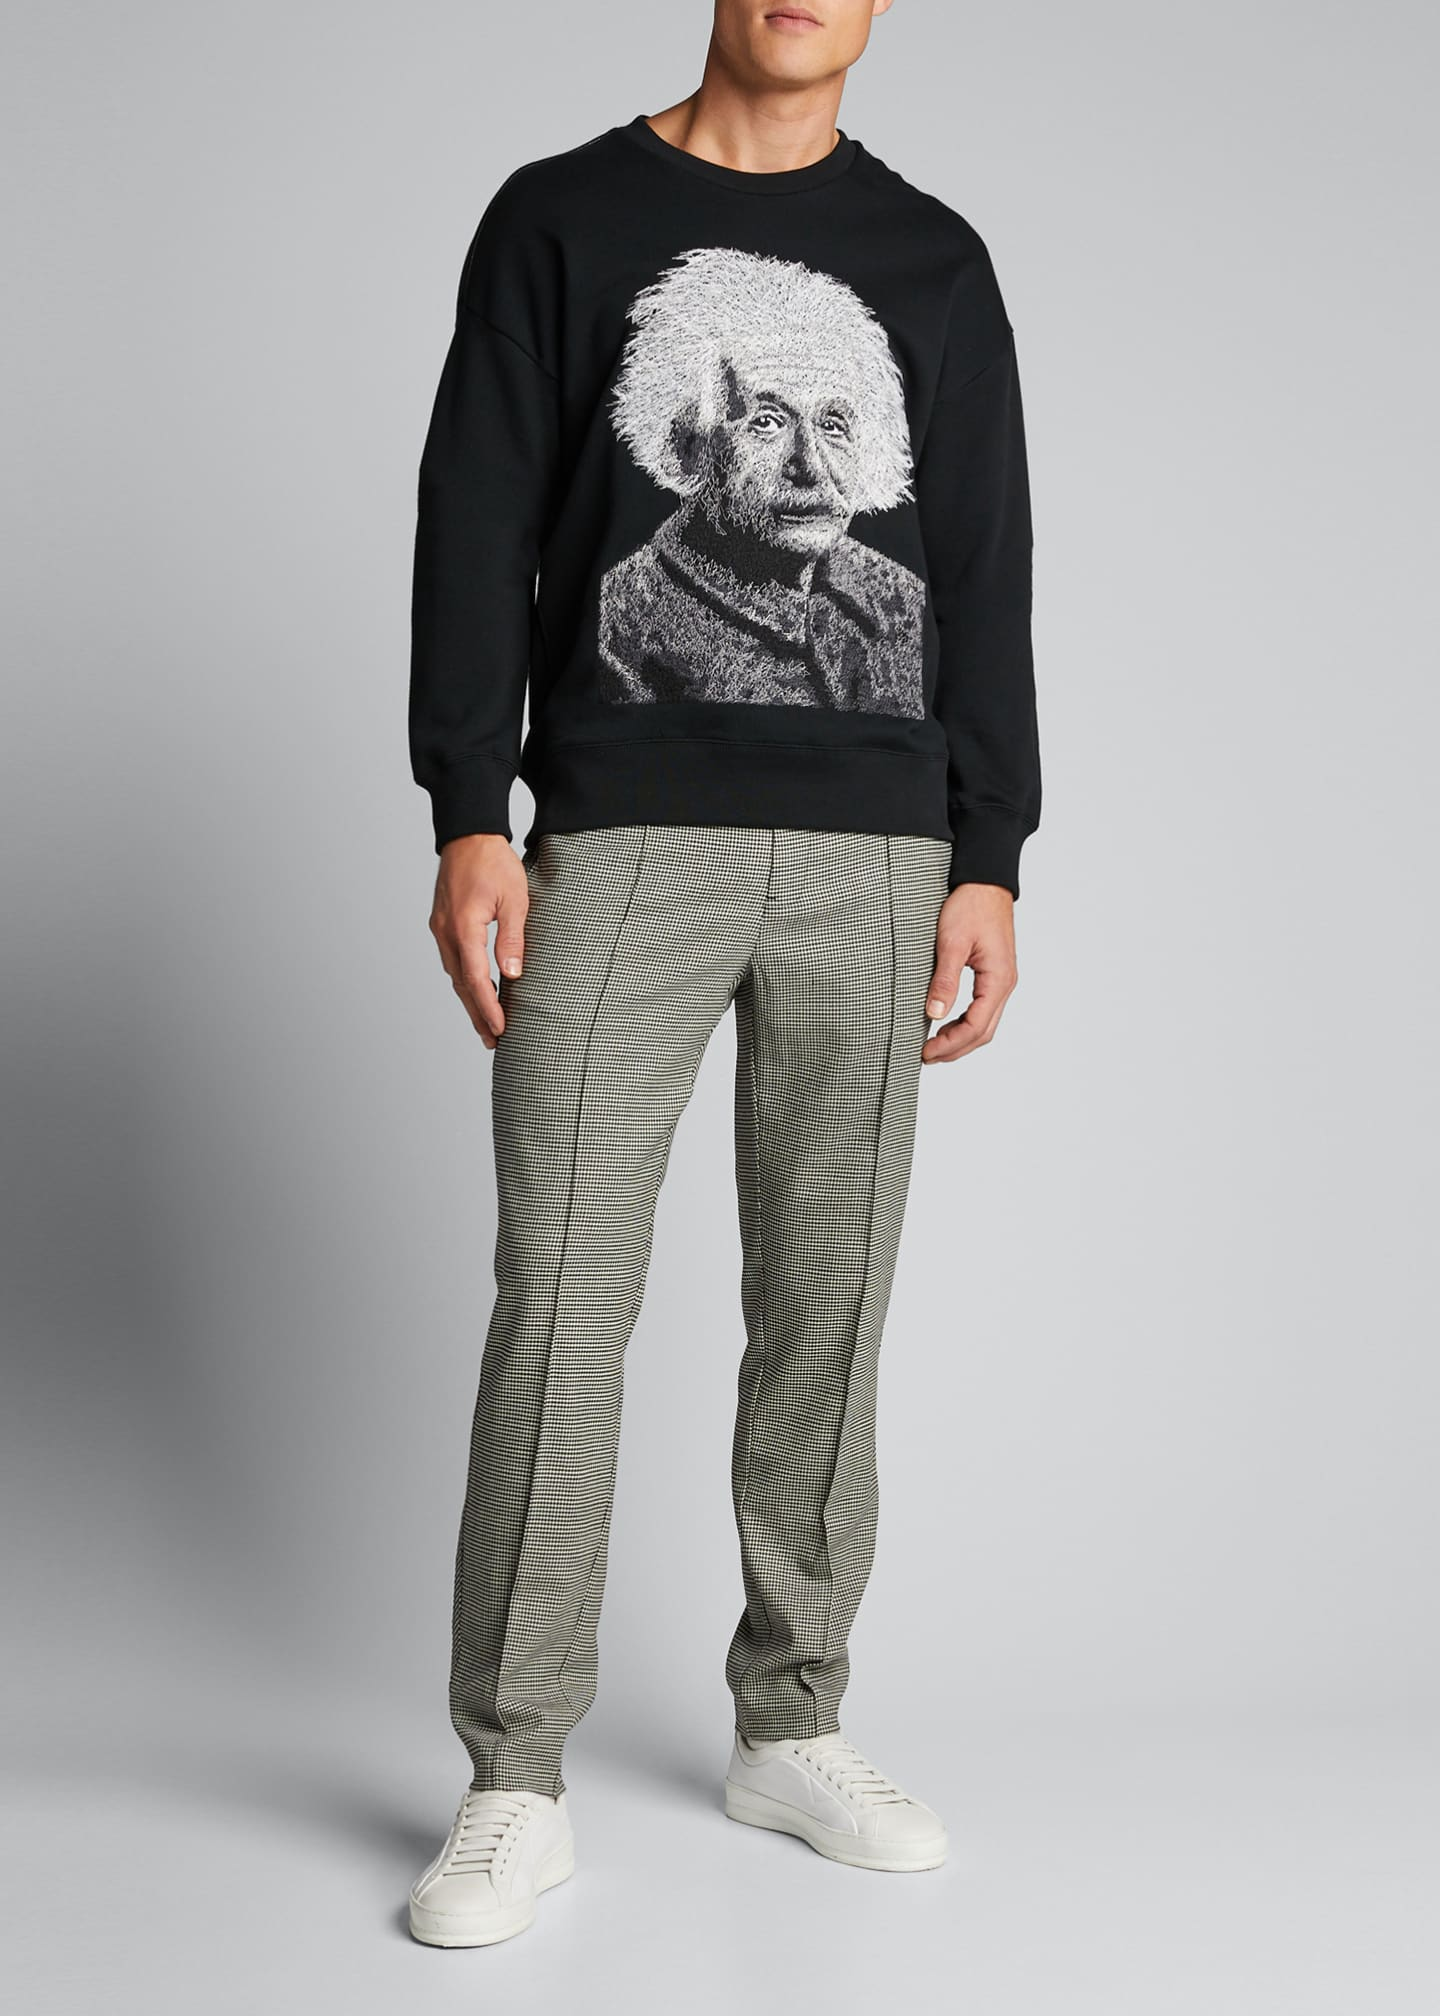 Ovadia & Sons Men's Einstein Graphic French-Terry Crewneck